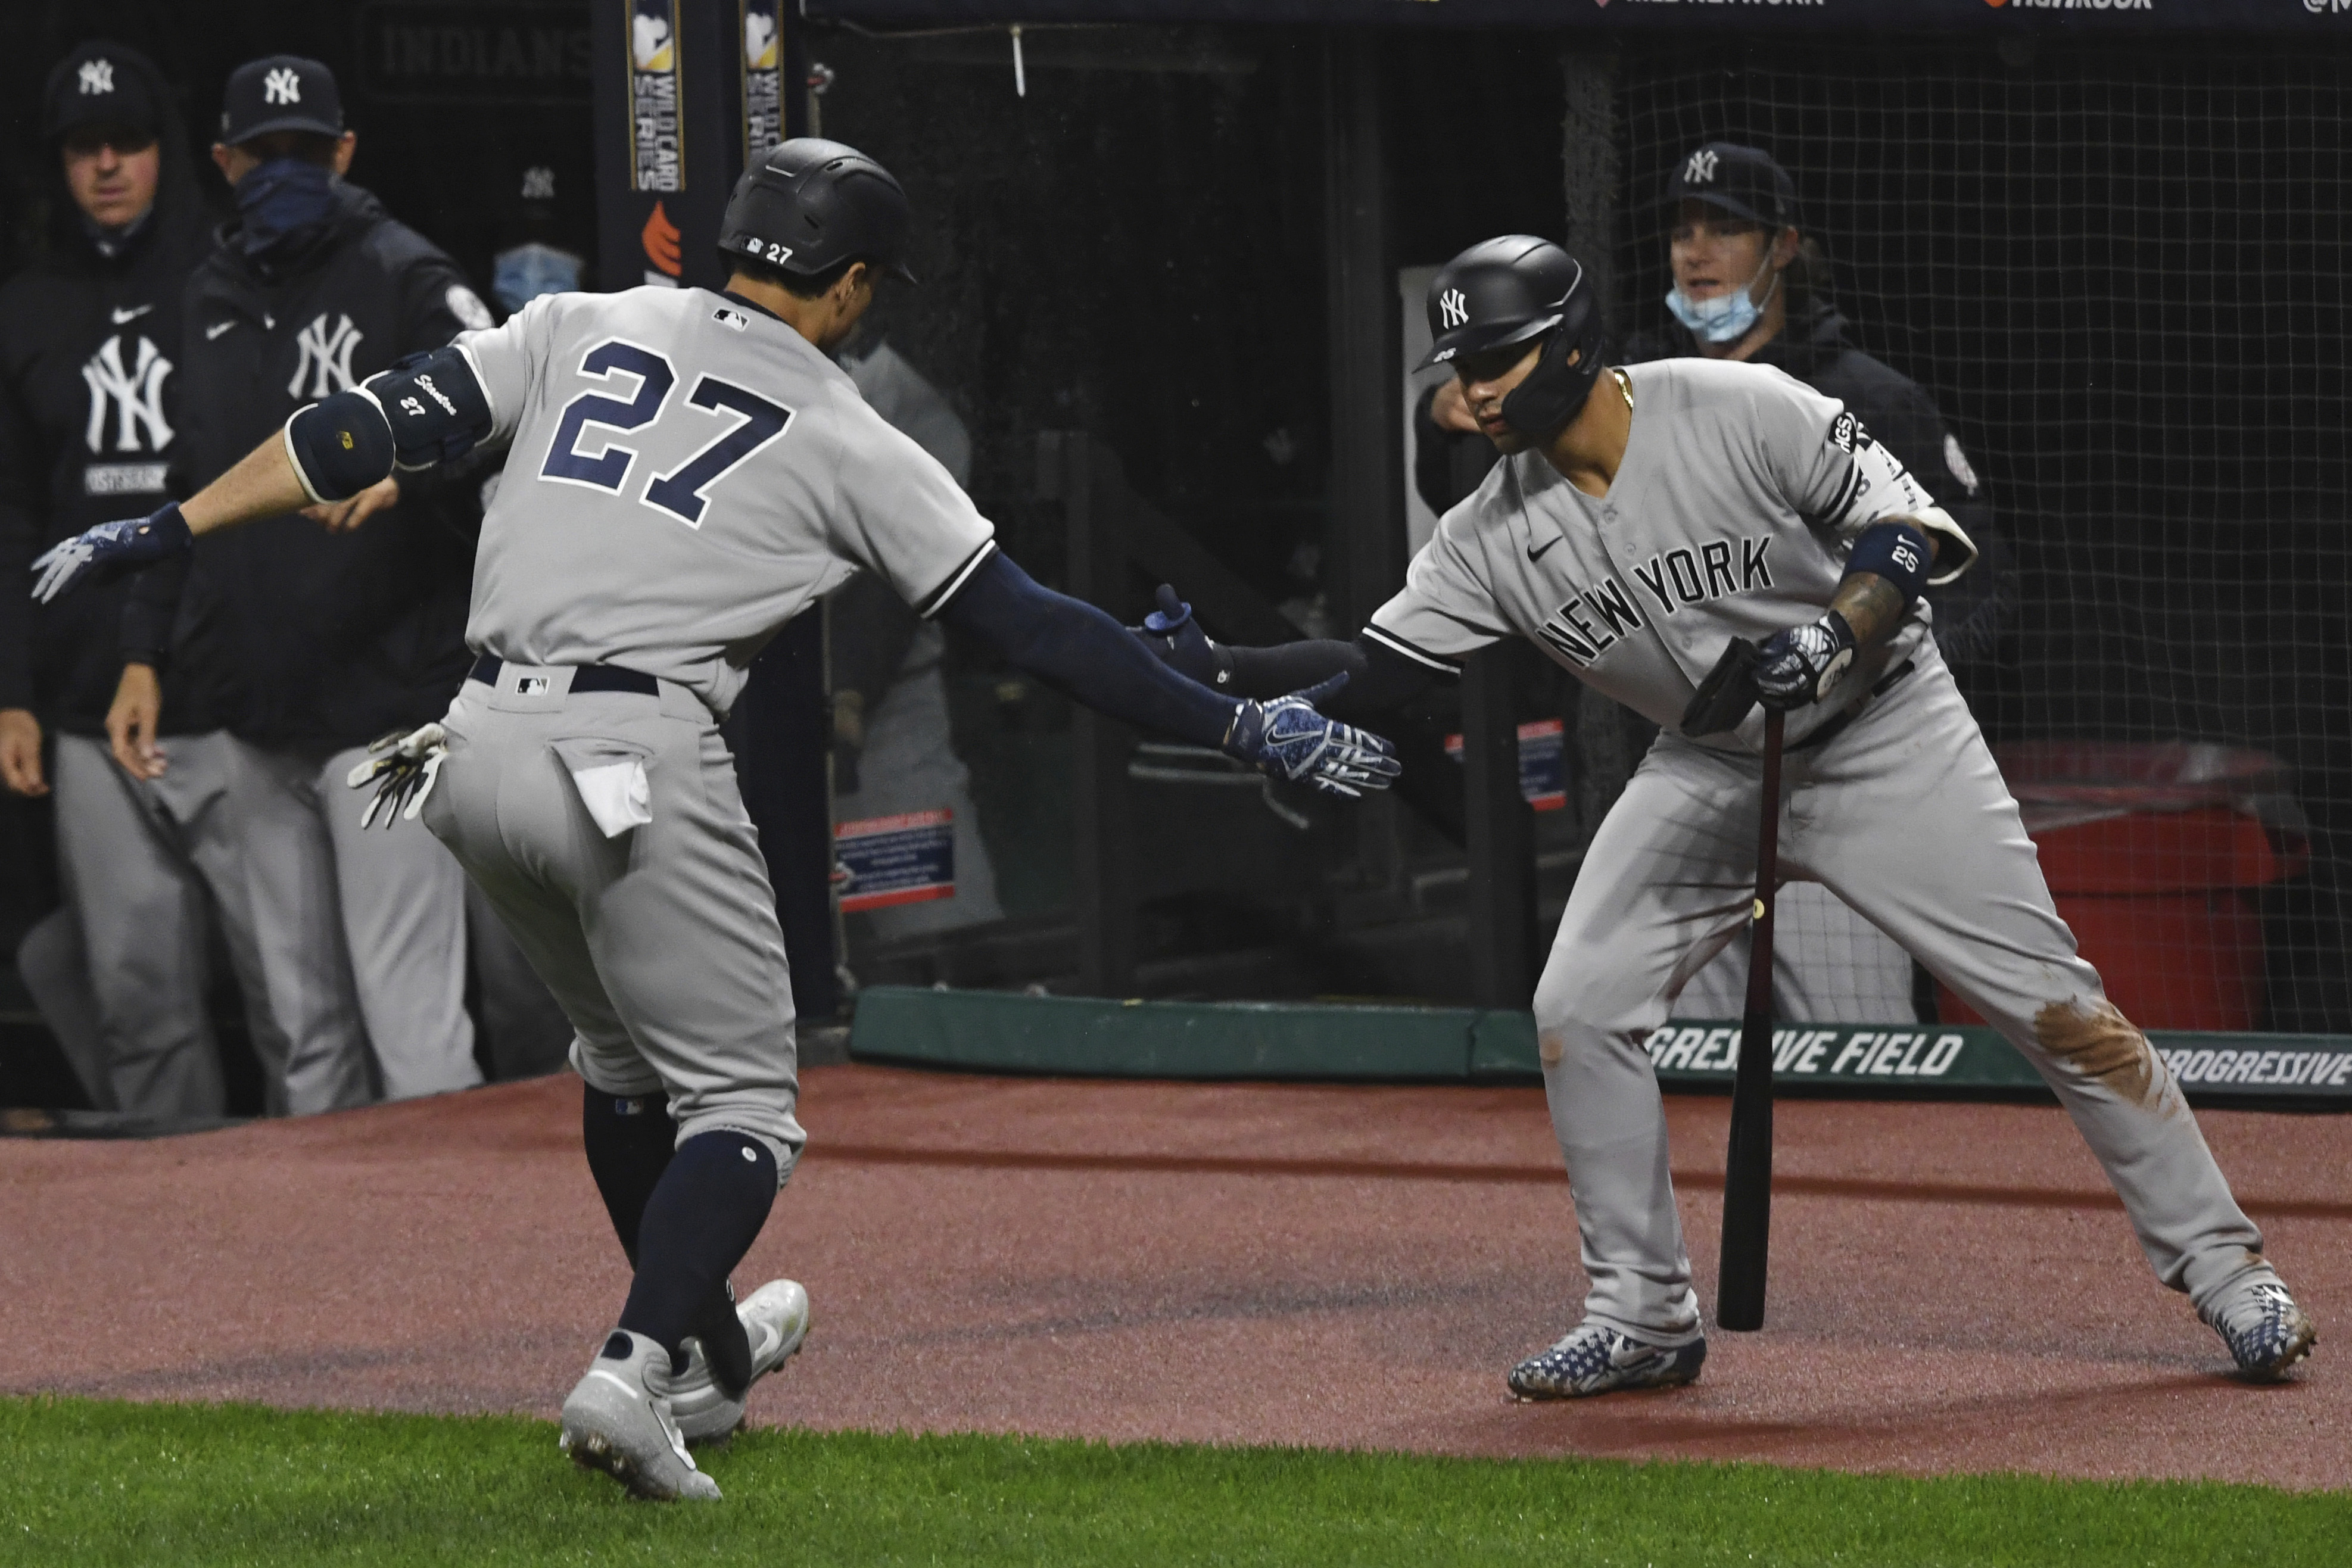 New York Yankees vs. Tampa Bay Rays TV schedule: Dates, times, TV, channel for AL Division Series | MLB Playoffs 2020 - nj.com